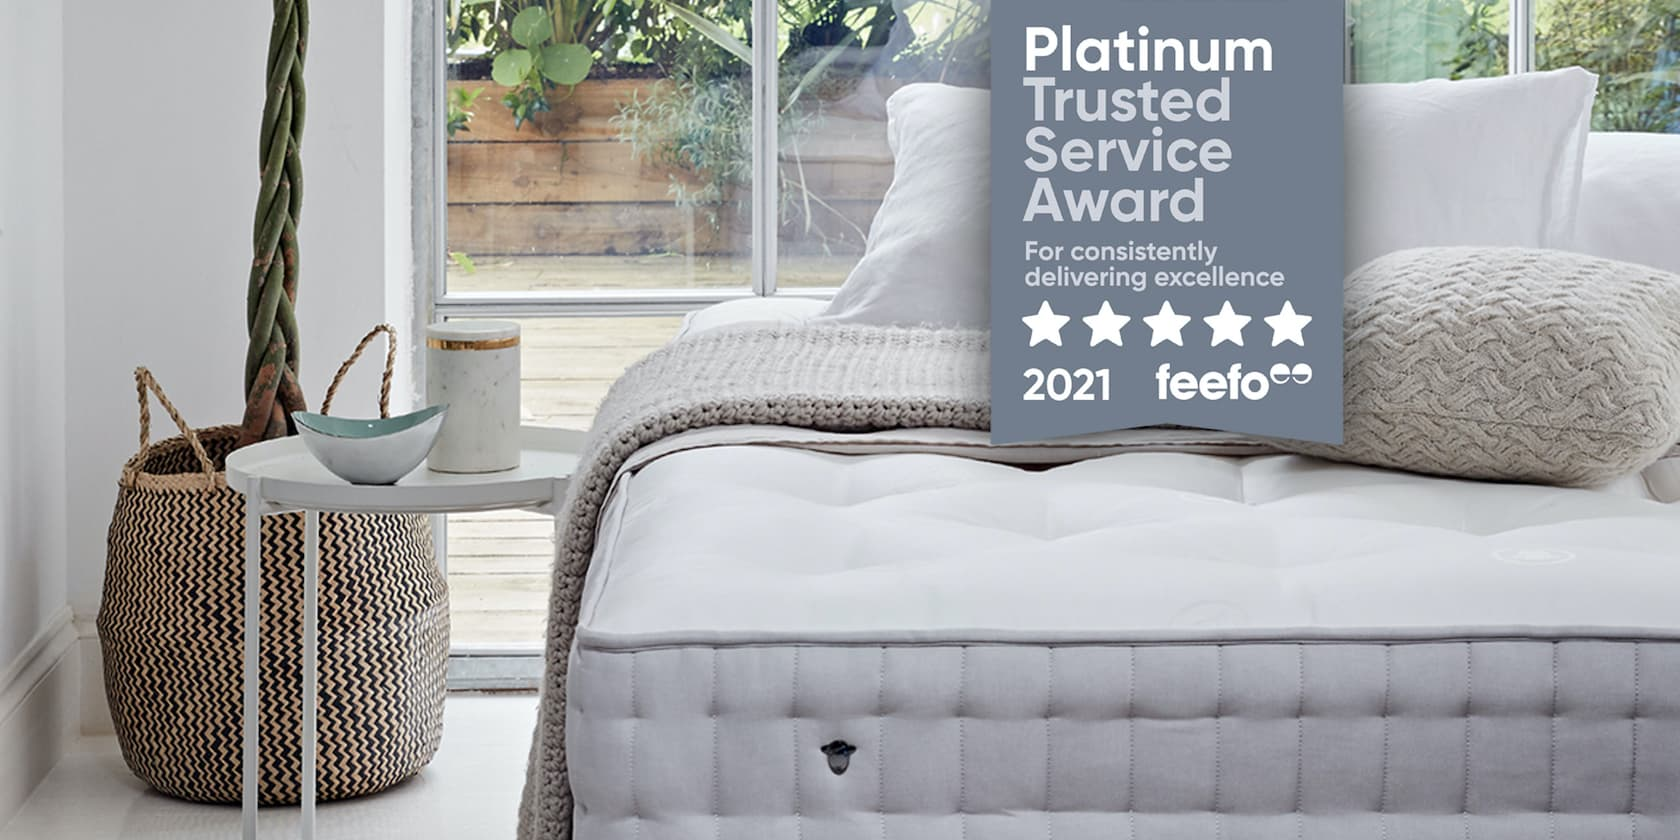 Herdysleep Receives Feefo Platinum Trusted Service Award 2021